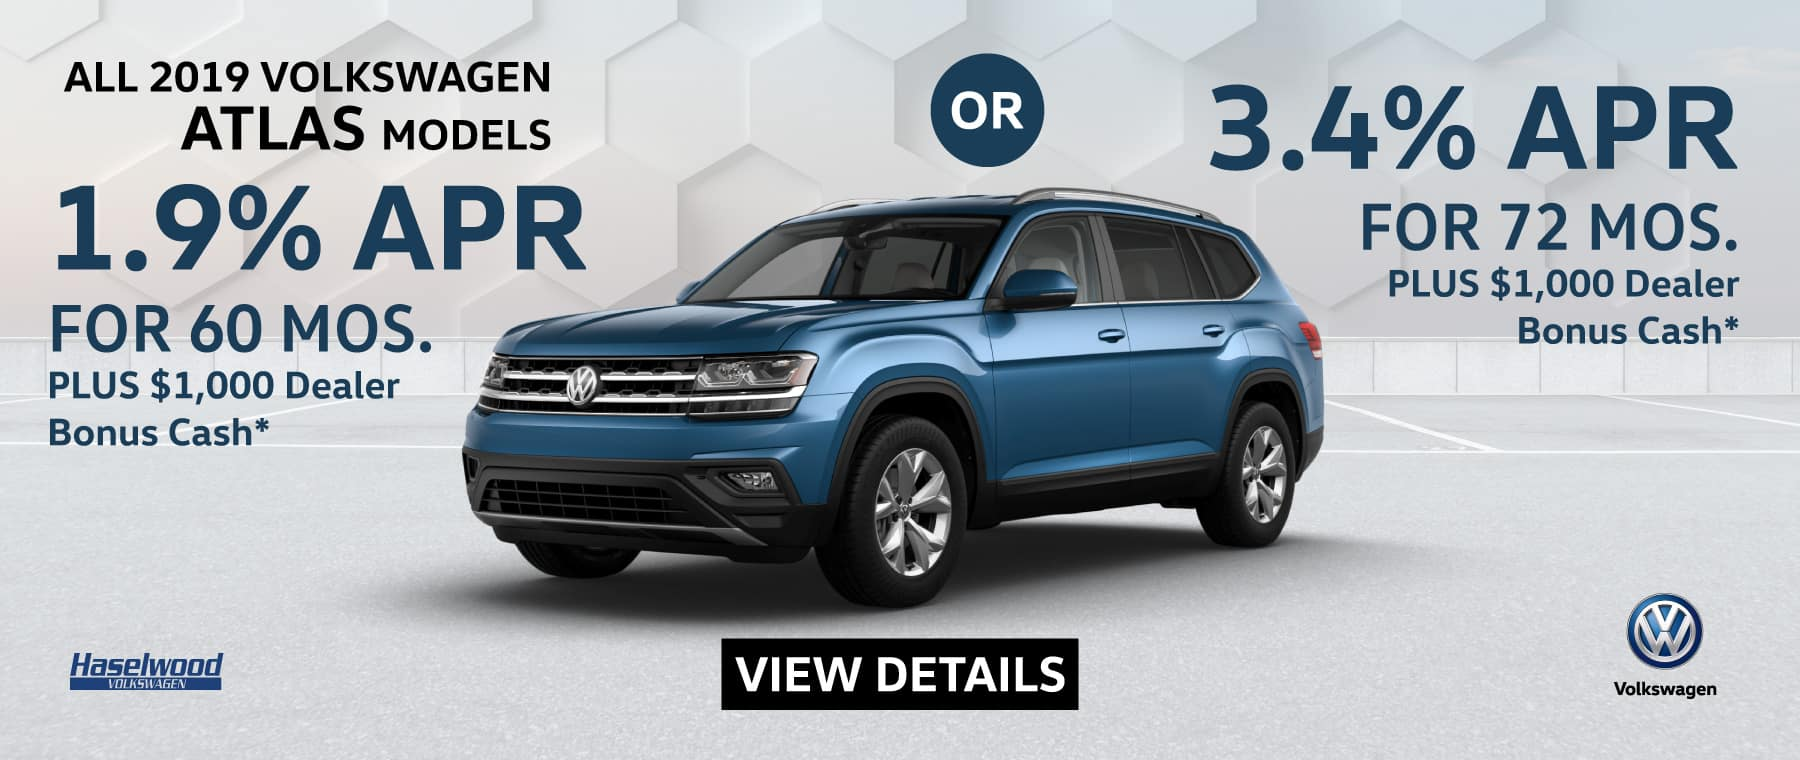 2019 ATLAS All Models 1.9% APR for 60 mos.  Or 3.4% APR for 72 mos.  PLUS $1,000 Dealer Bonus Cash (V1901-940M)   *1.9% APR for 60 mos. Or 3.4% APR for 72 mos., plus $1,000 Dealer Bonus Cash (V1901-940M). No down payment required; includes a $595 acquisition fee on new 2019 ATLAS All Models, financed through Volkswagen Credit. No security deposit required. For highly qualified customers on approved top tier credit through Volkswagen Credit. Lessee responsible for maintenance, excessive wear/tear and 20¢/mi over 10K mi/yr. Excludes state and local taxes, tags, registration and title, insurance and dealer charges. Subject to credit approval. 60 monthly payments required. A negotiable dealer documentary service fee of up to $150 may be added to the sale price or capitalized cost. See dealer for complete details and restrictions. 6 years/72,000 miles (whichever occurs first). New Vehicle Limited Warranty on MY2019 and newer VW vehicles, excluding e-Golf. See owner's literature or dealer for warranty exclusions and limitations. Exp. 1/31/2019.